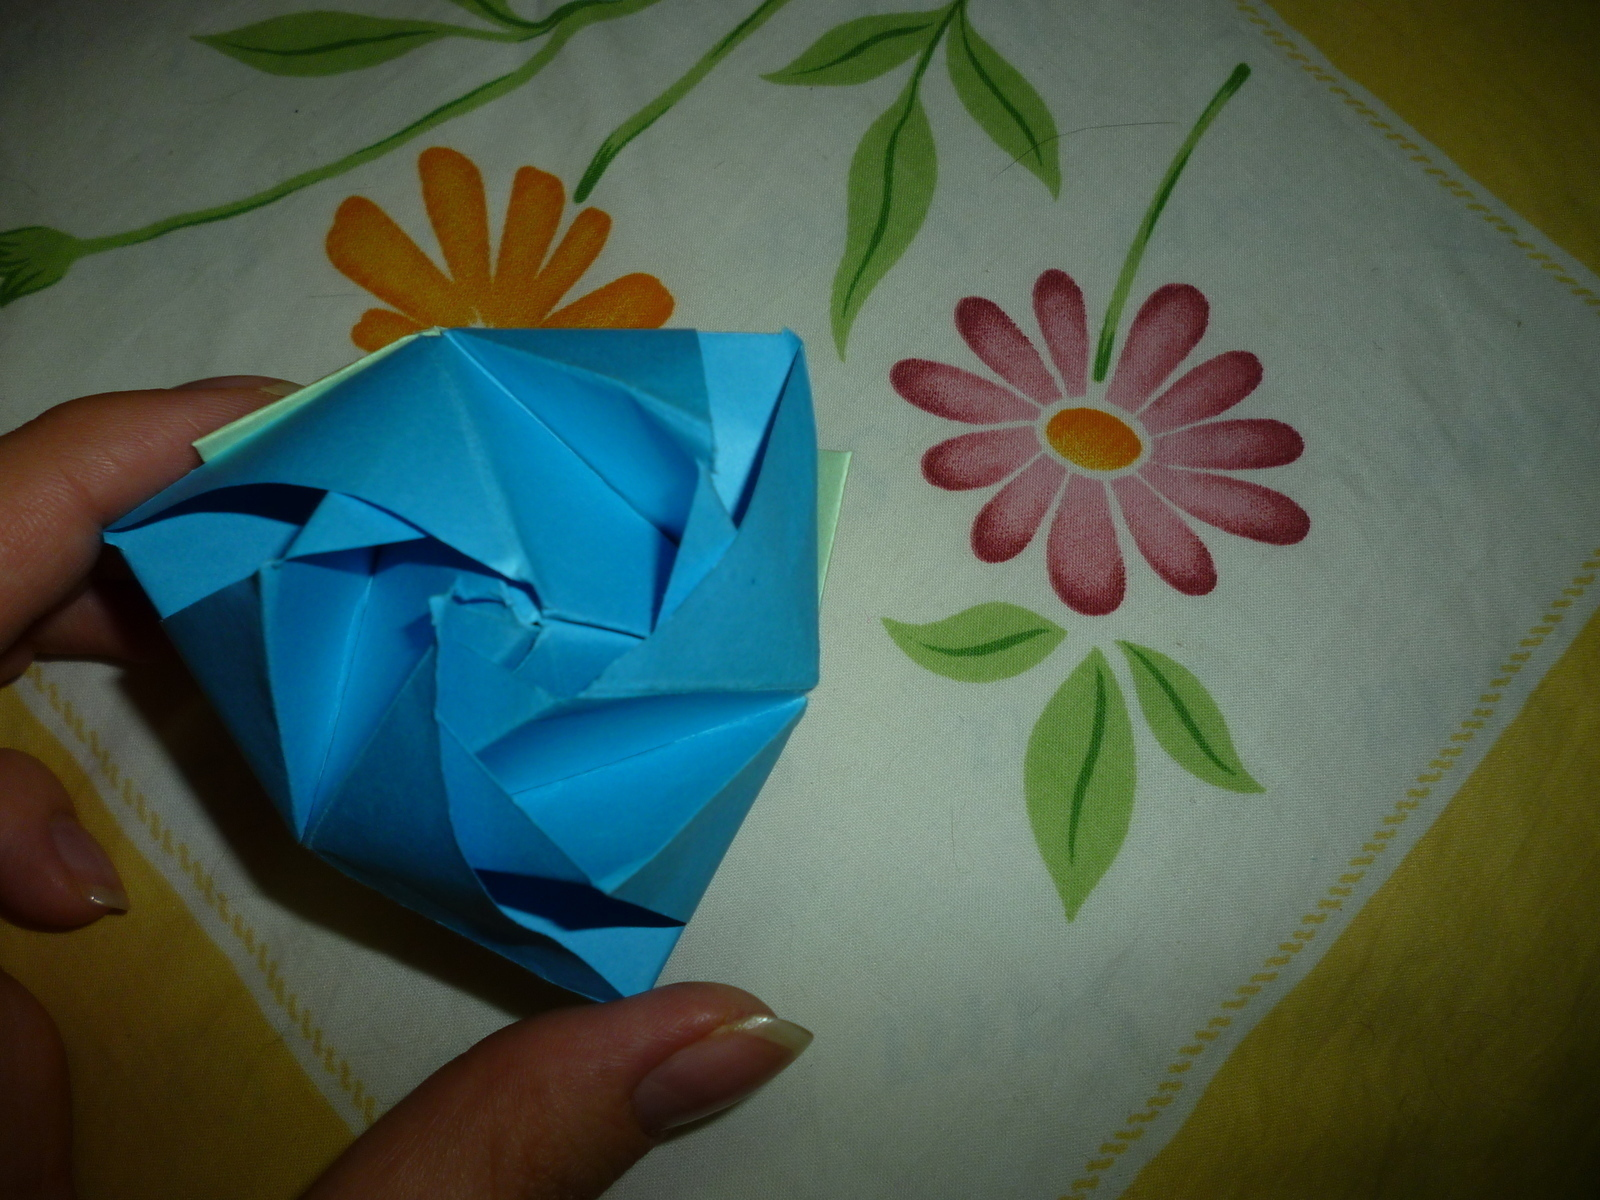 Magic Rose Cube · An Origami Shape · Paper Folding and ... - photo#41